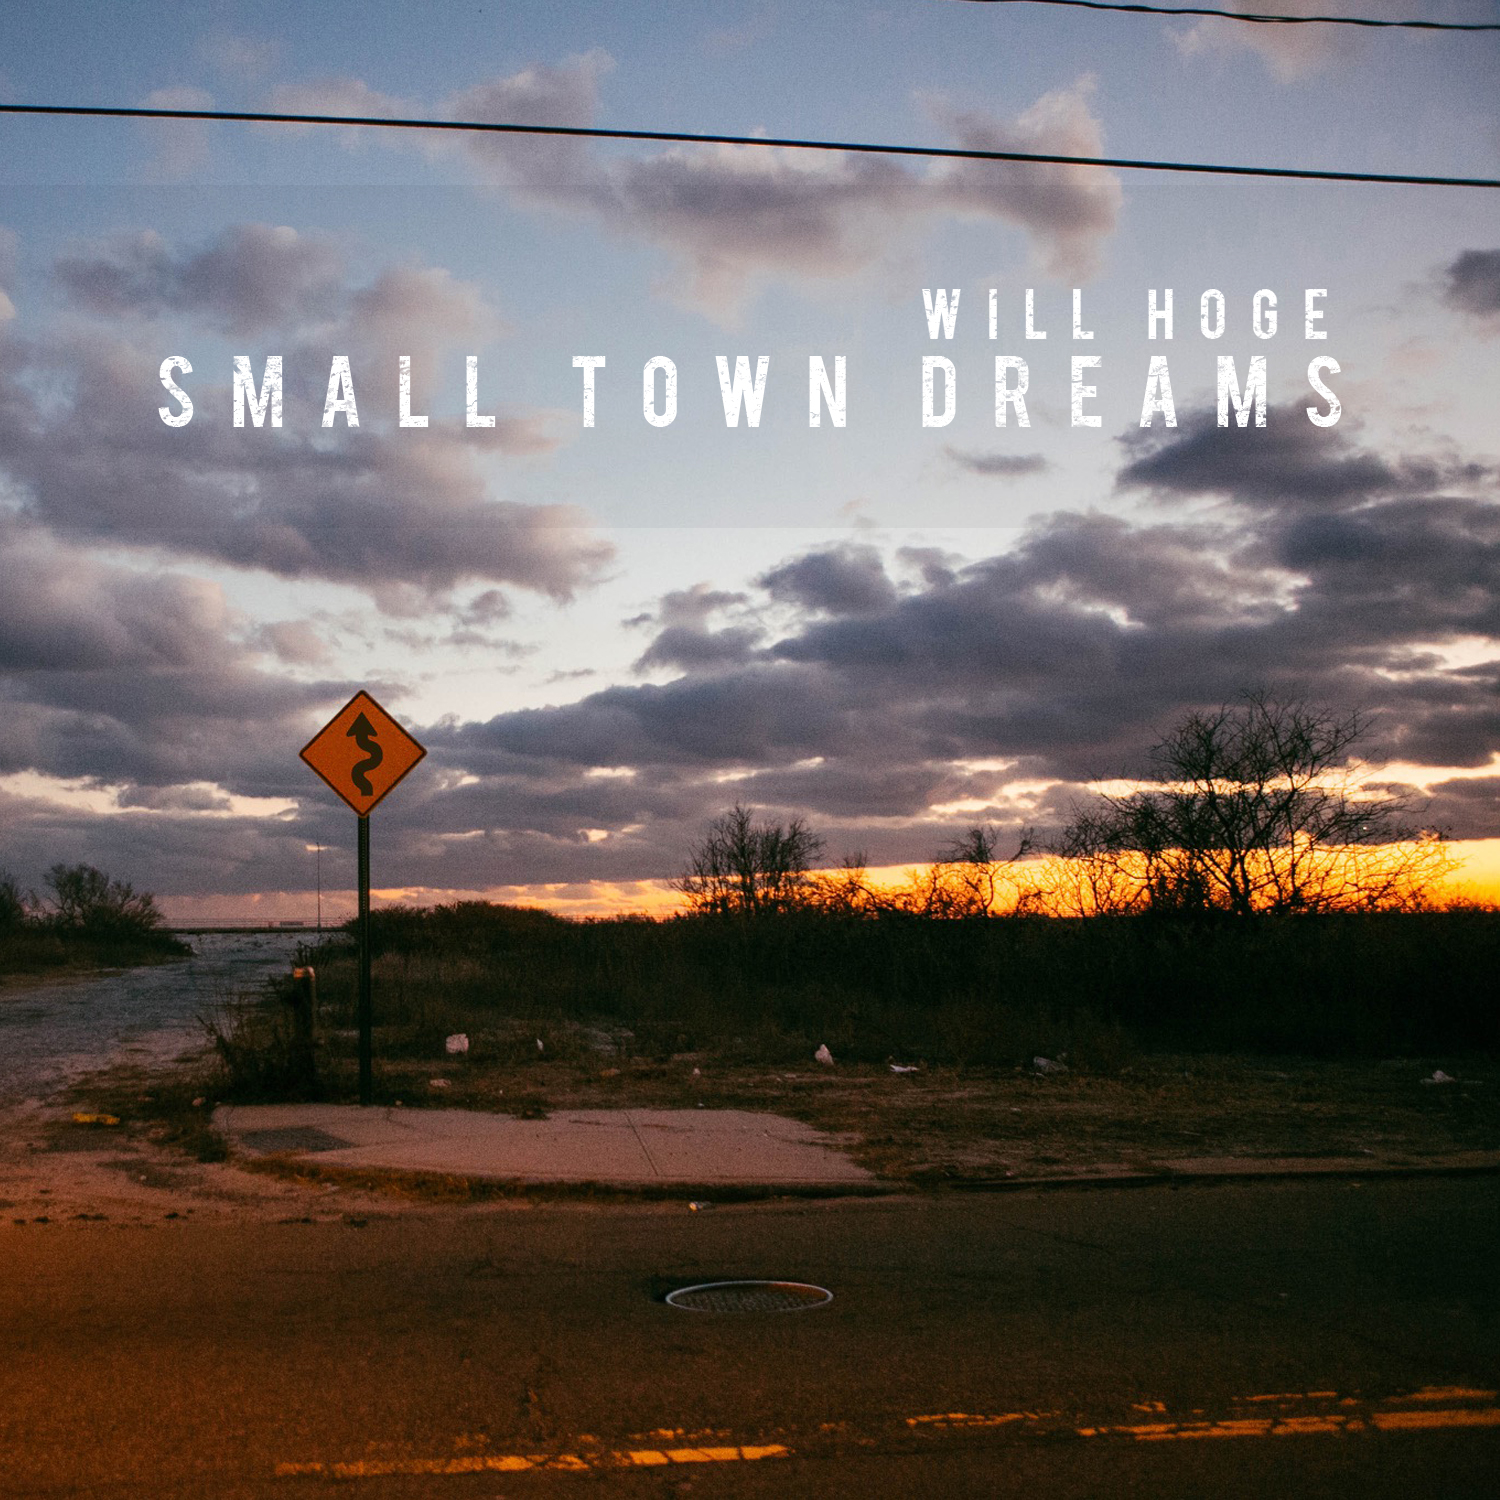 will hoge small town dreams album